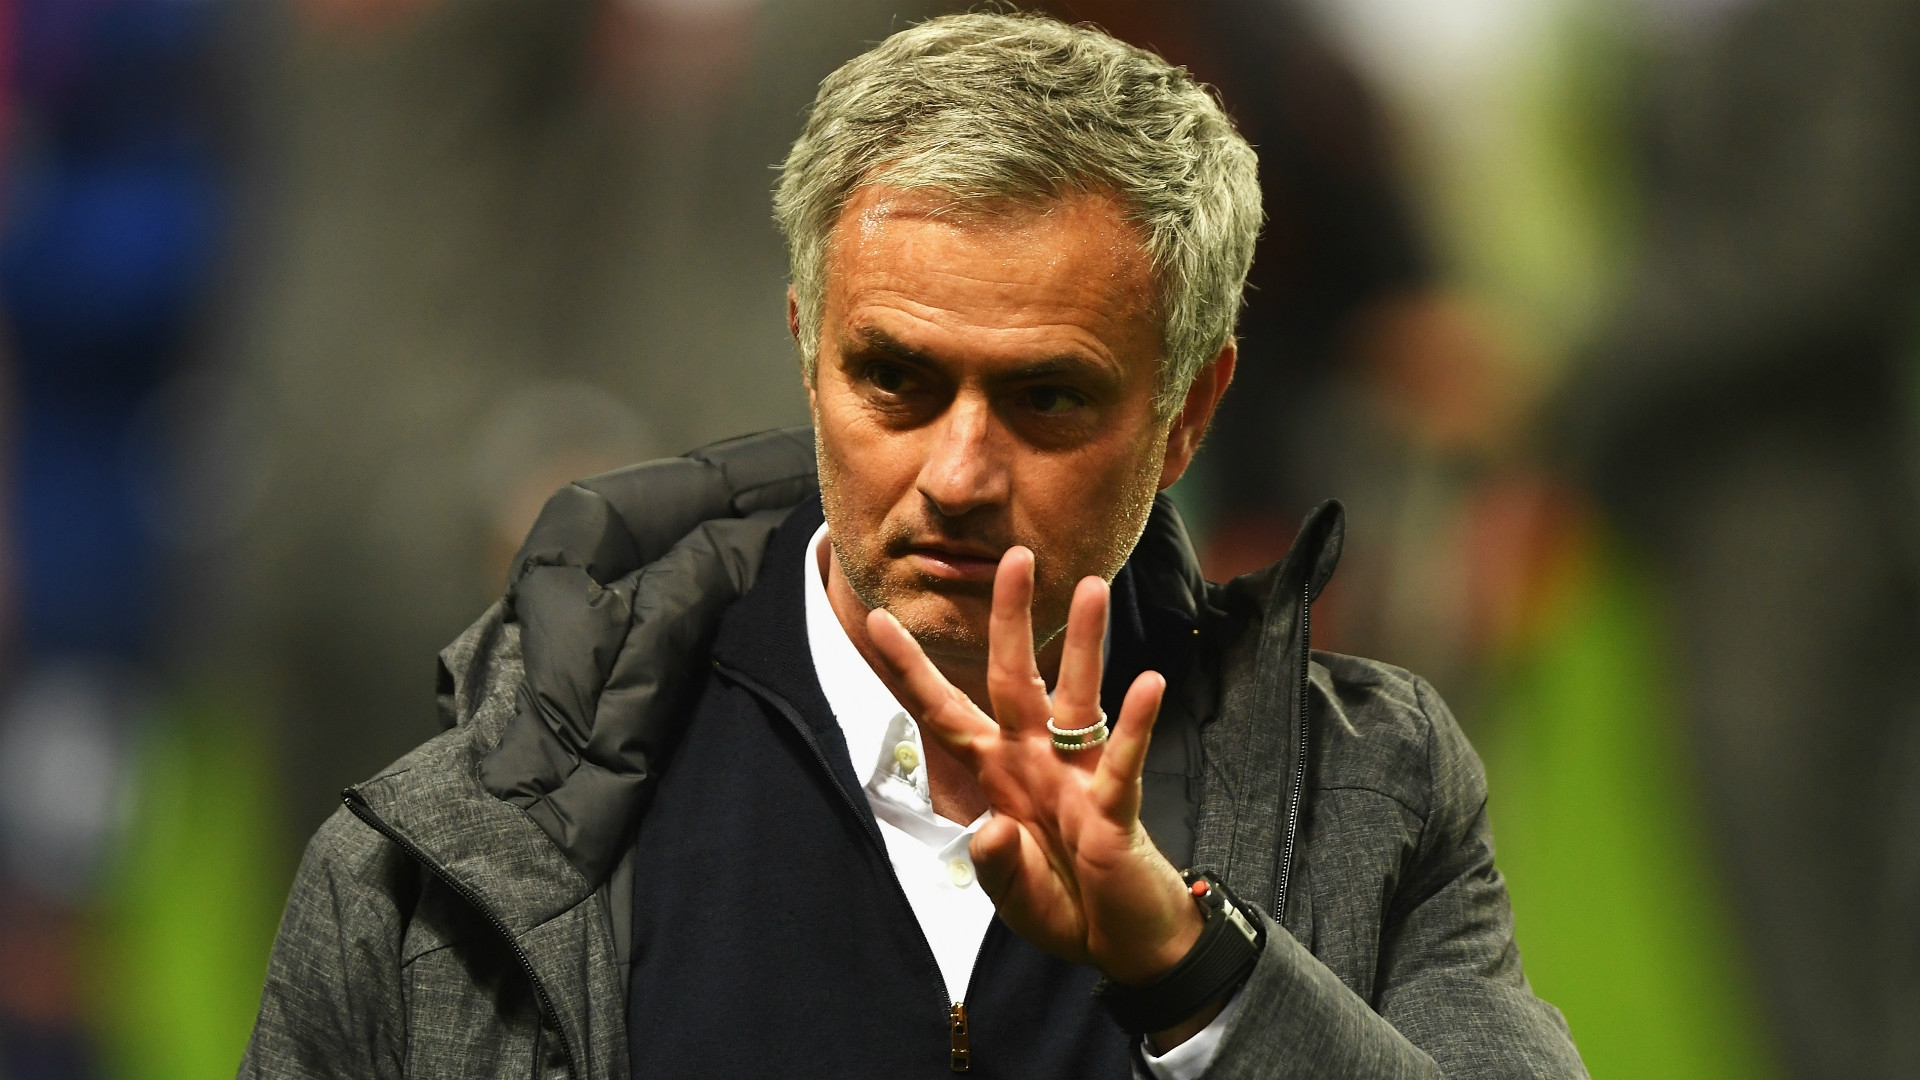 Jose Mourinho says that Manchester United will desperately need reinforcements to their squad if they are to stand a chance of winning the Premier League title.